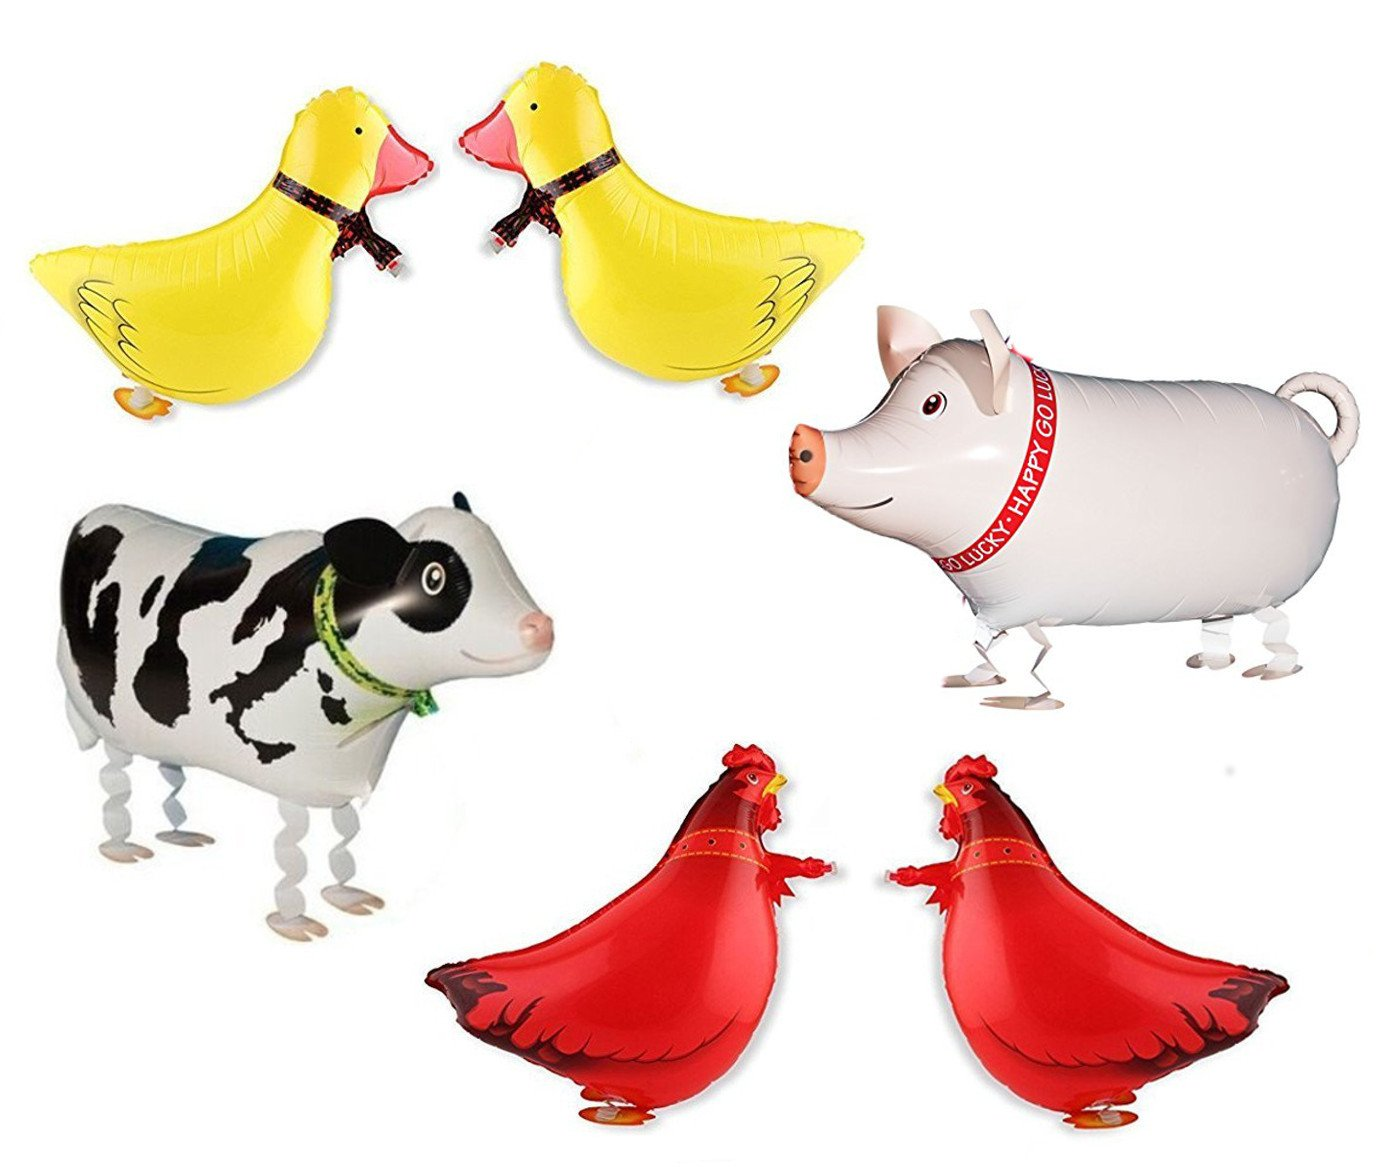 Ovee Lando Set of 6 Walking Farm Animal Helium Balloon Pet Air Walkers, Mixes Pet Party